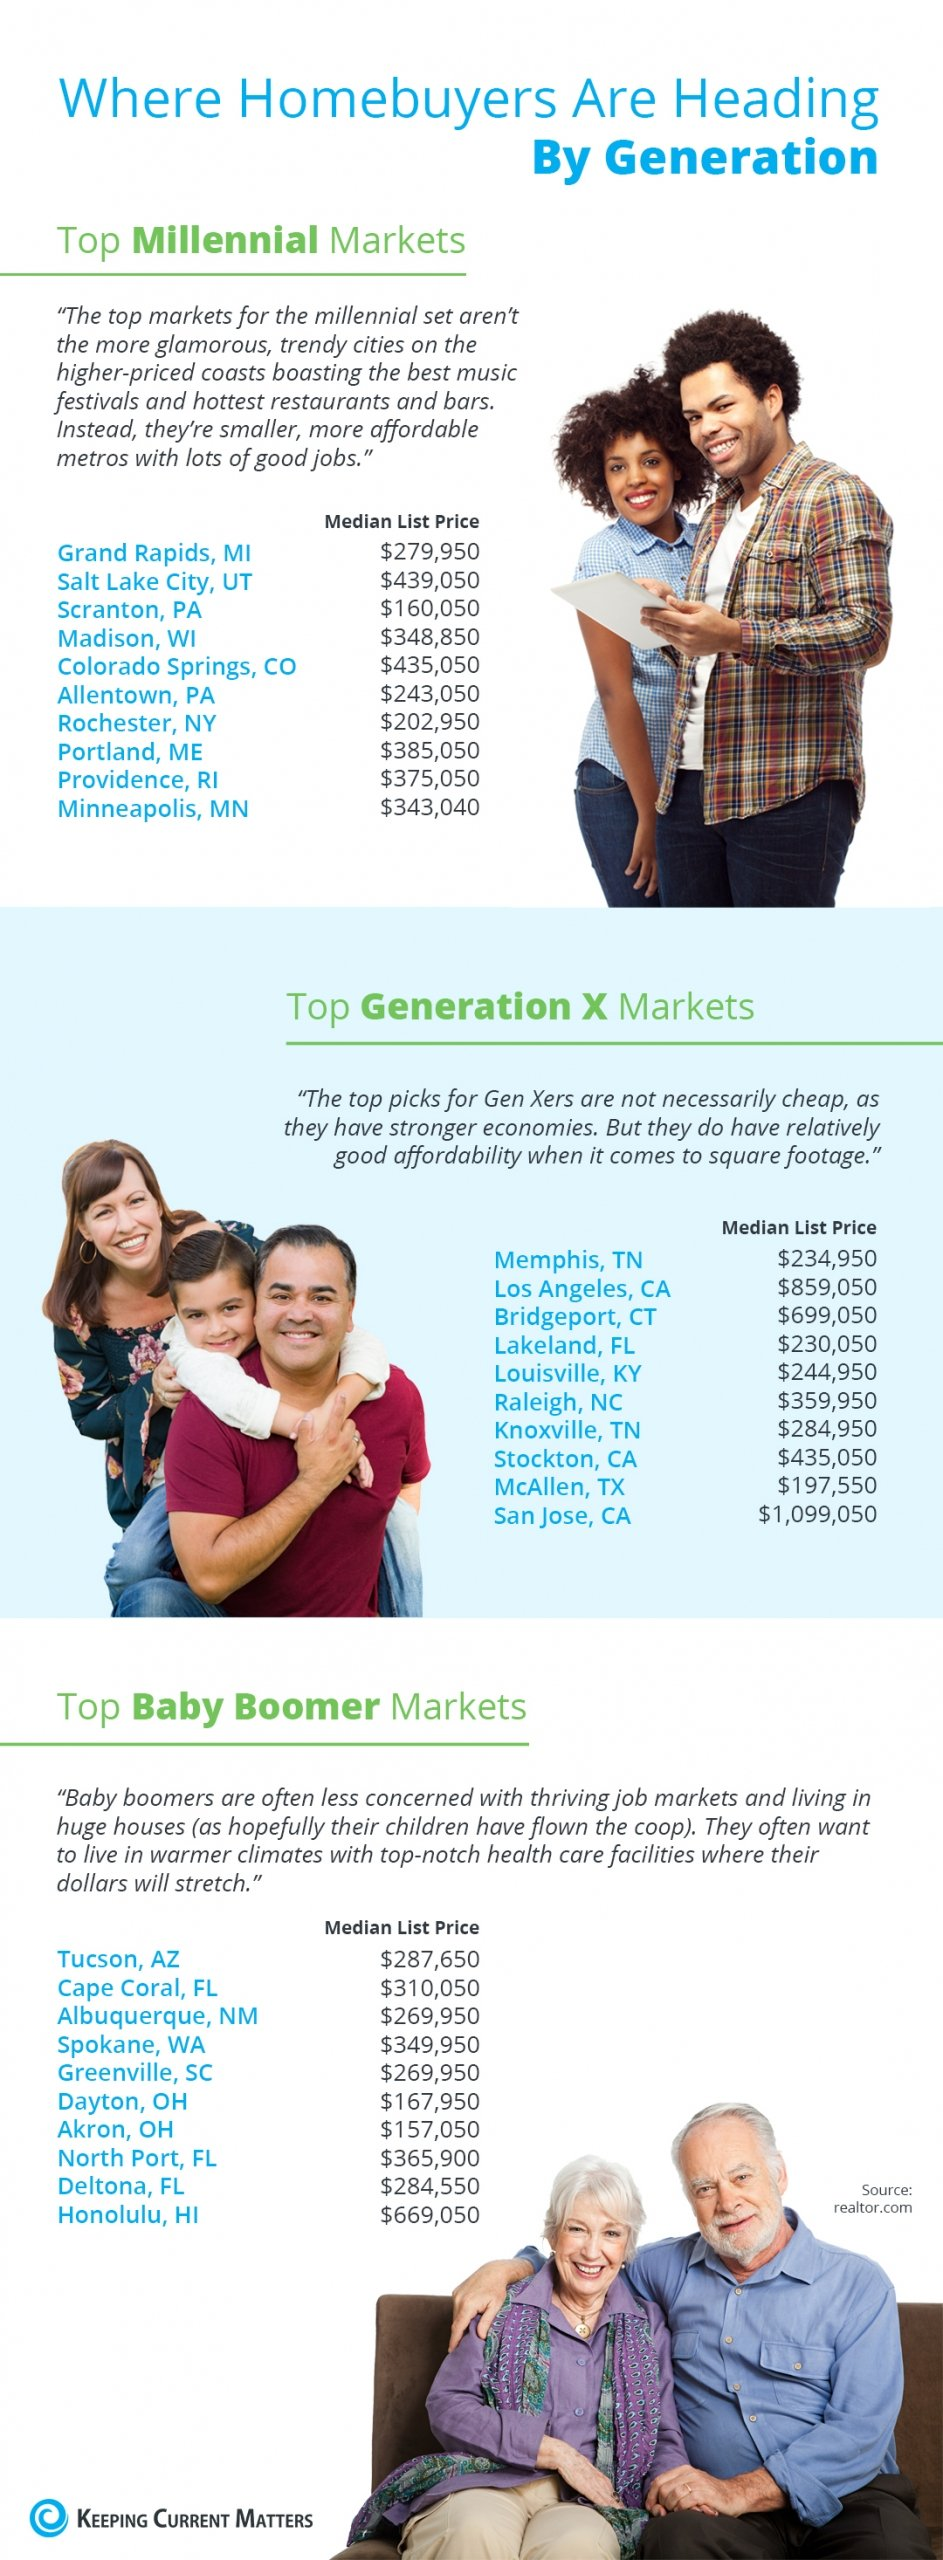 Where Homebuyers Are Heading By Generation [INFOGRAPHIC] | Keeping Current Matters